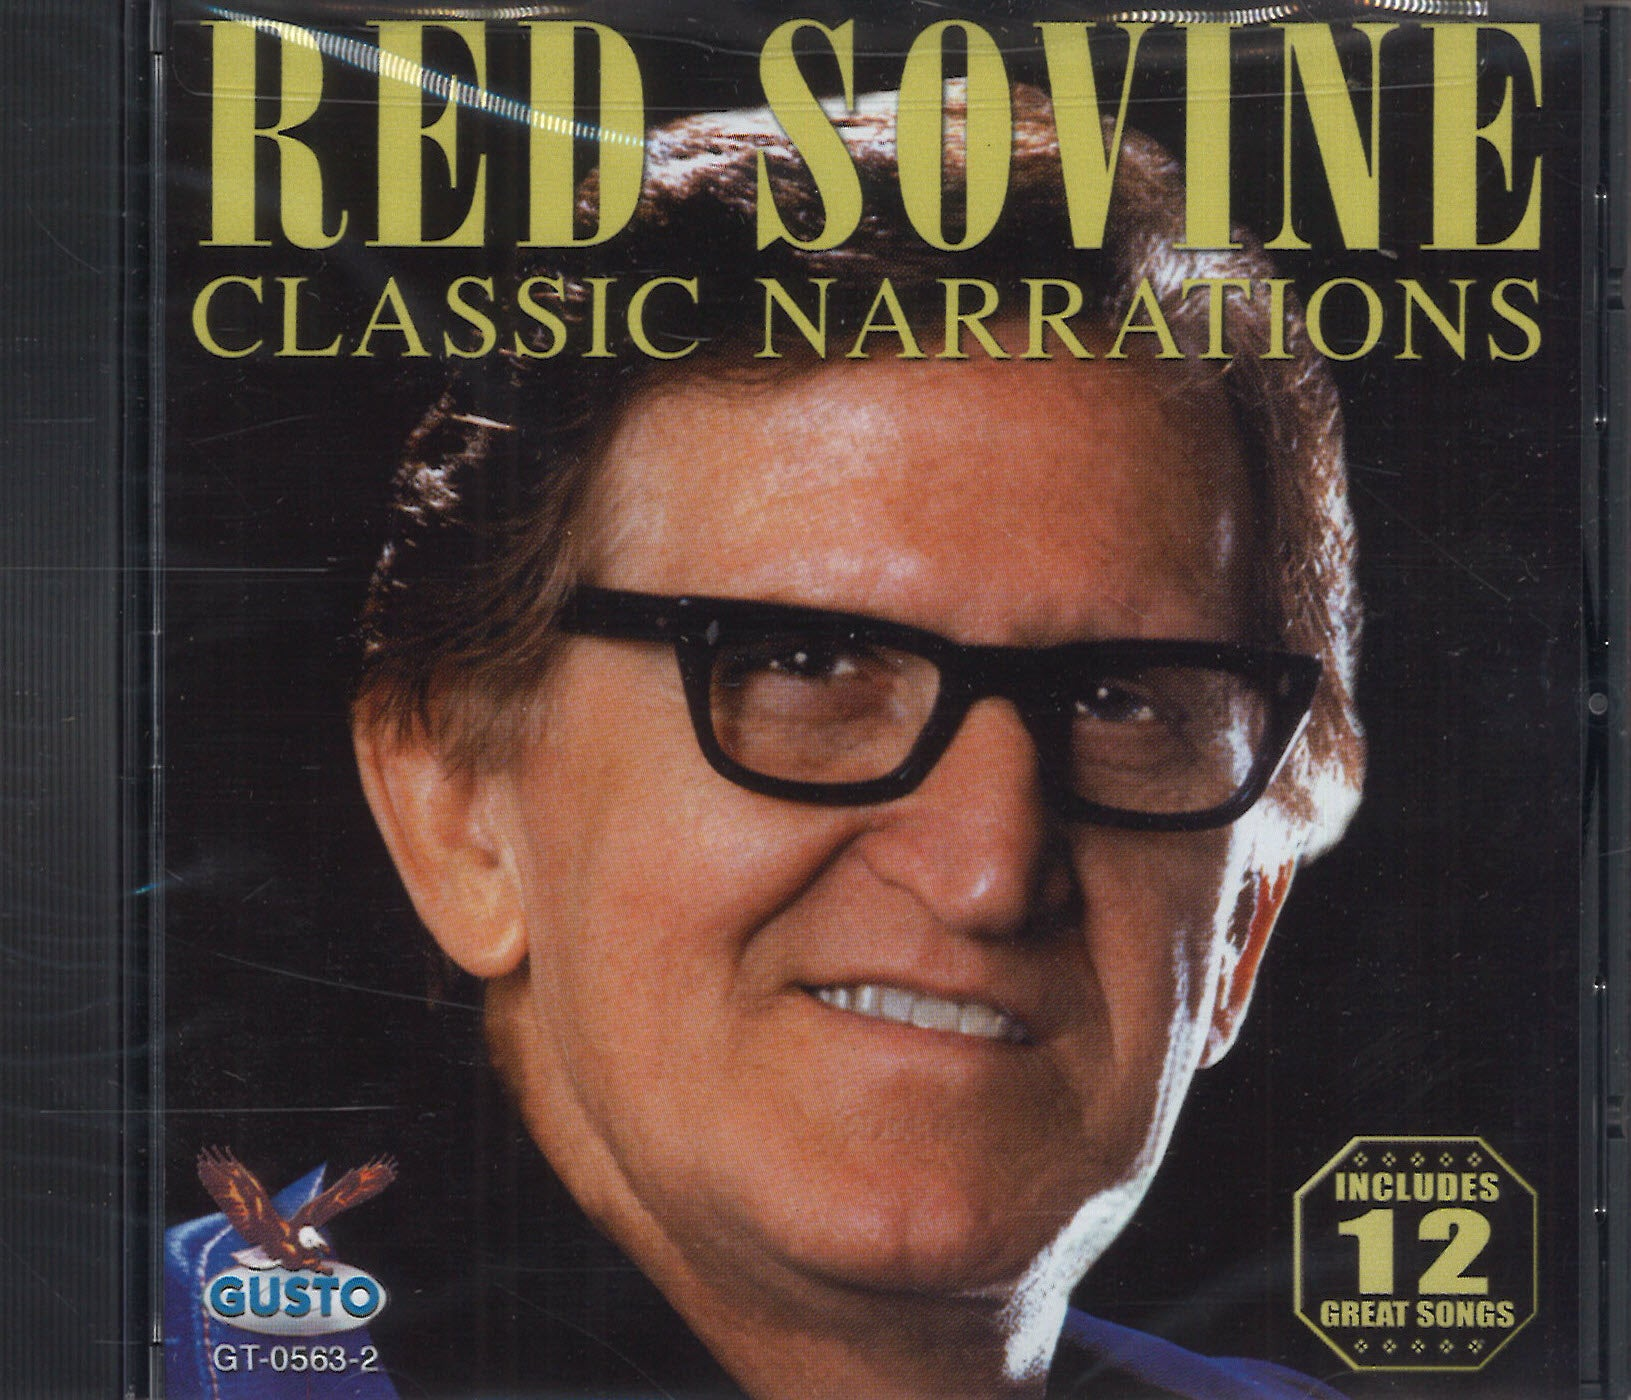 Red Sovine Classic Narrations